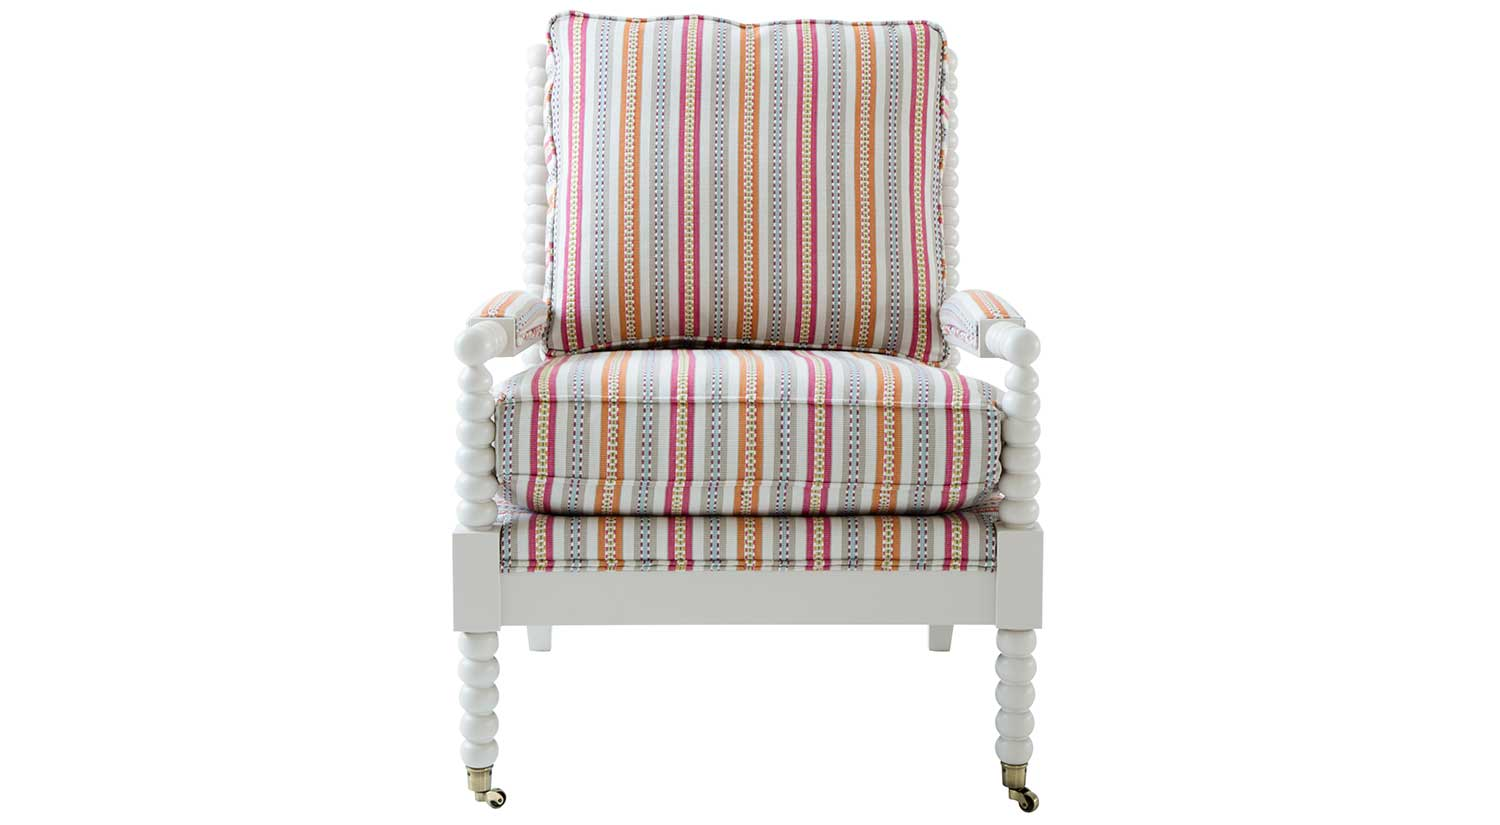 chair always wanted linen a chairs pair pin adore have spool down this i